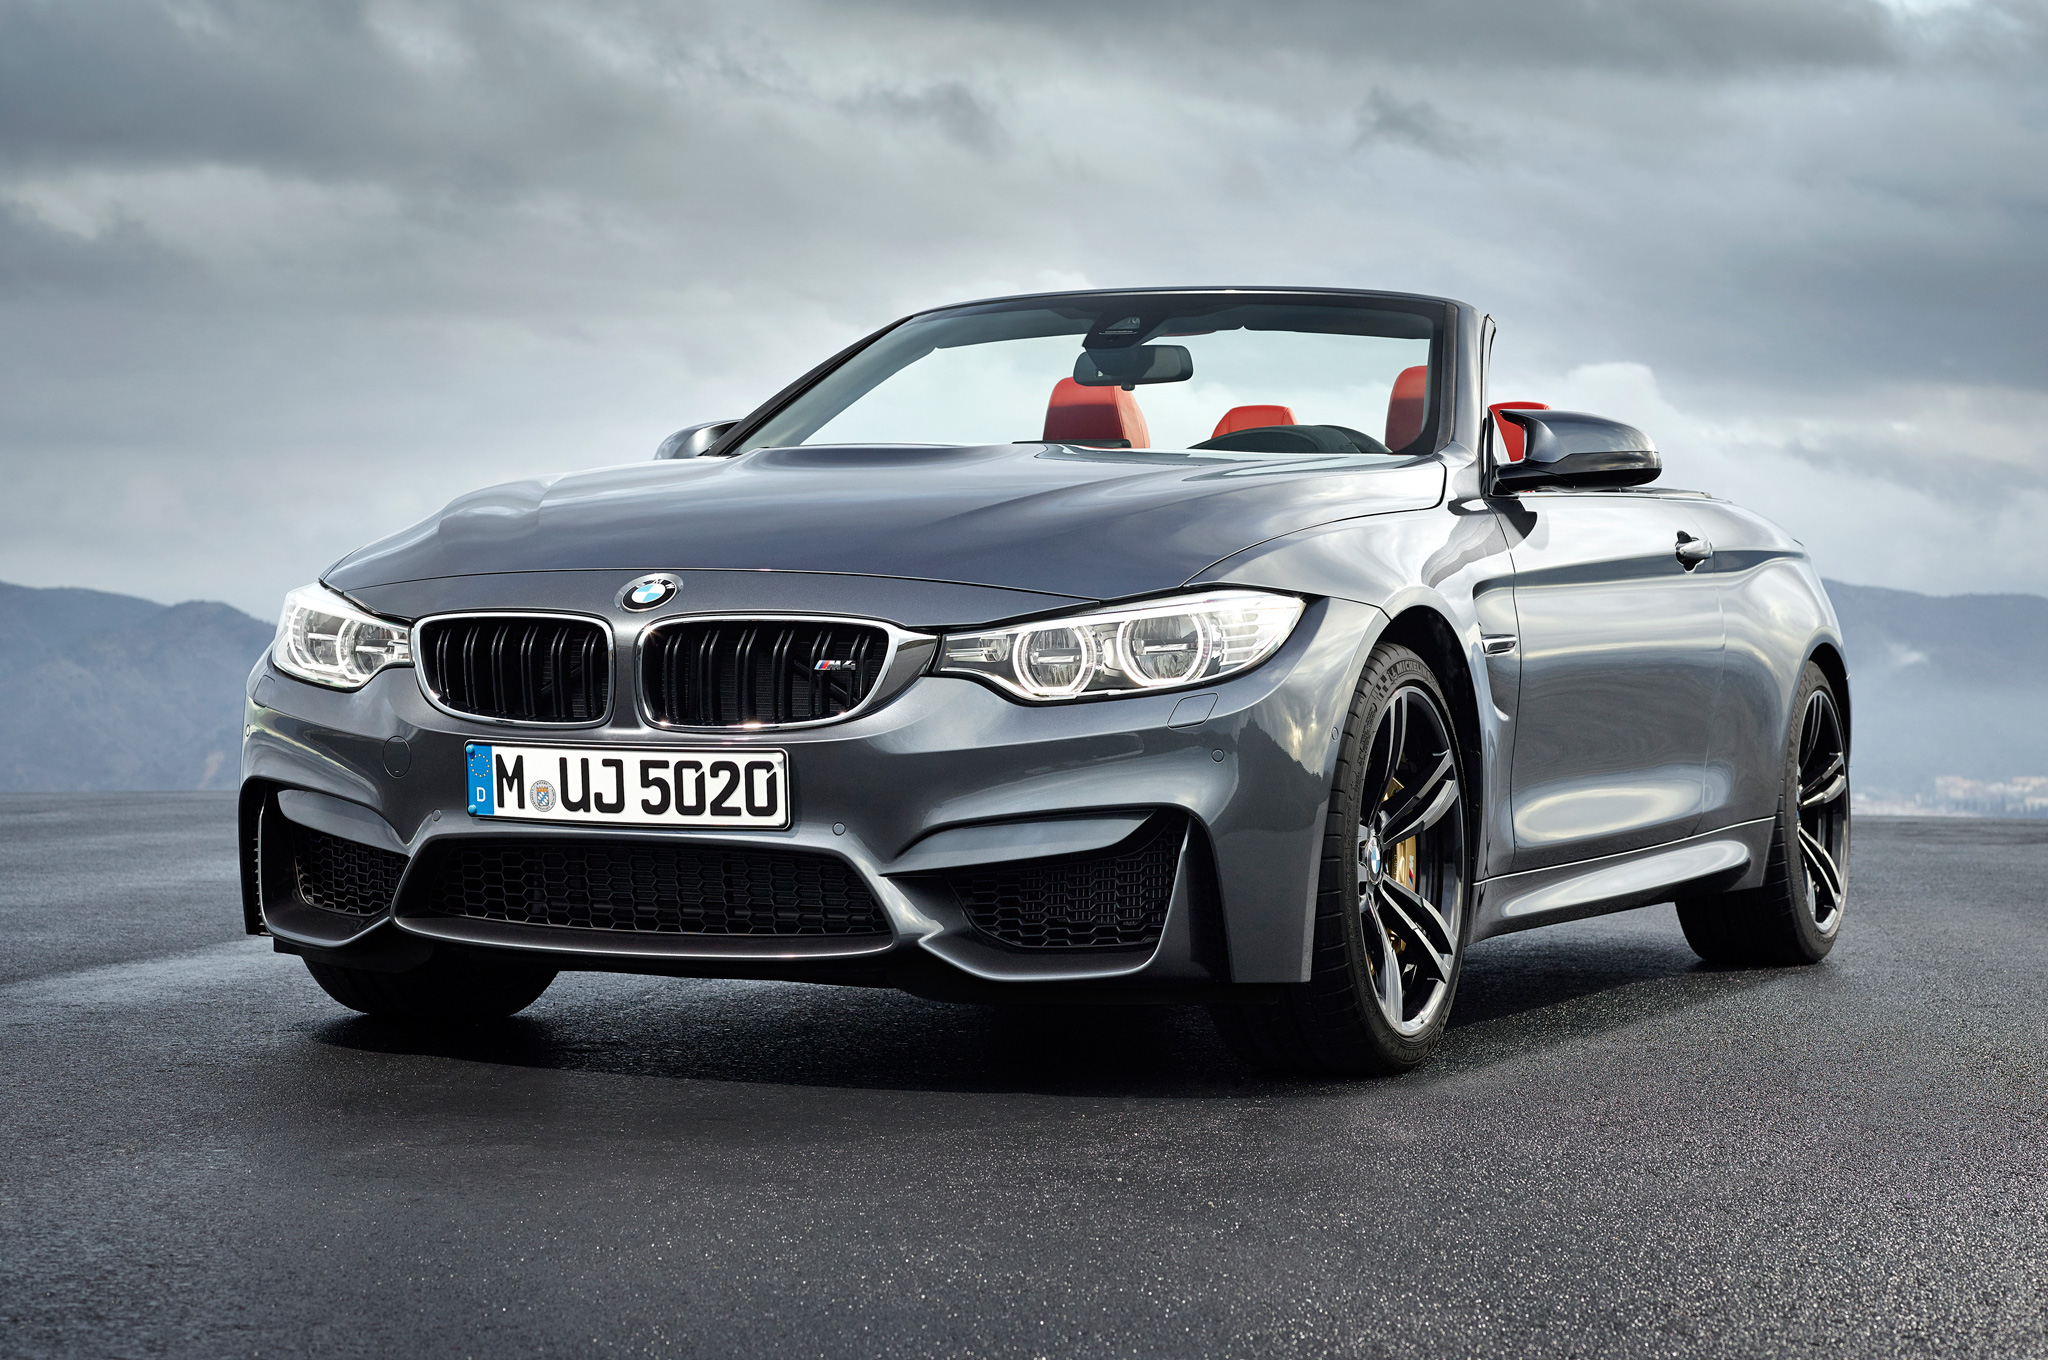 2015 Bmw M4 Convertible Front Side Photo (View 50 of 50)